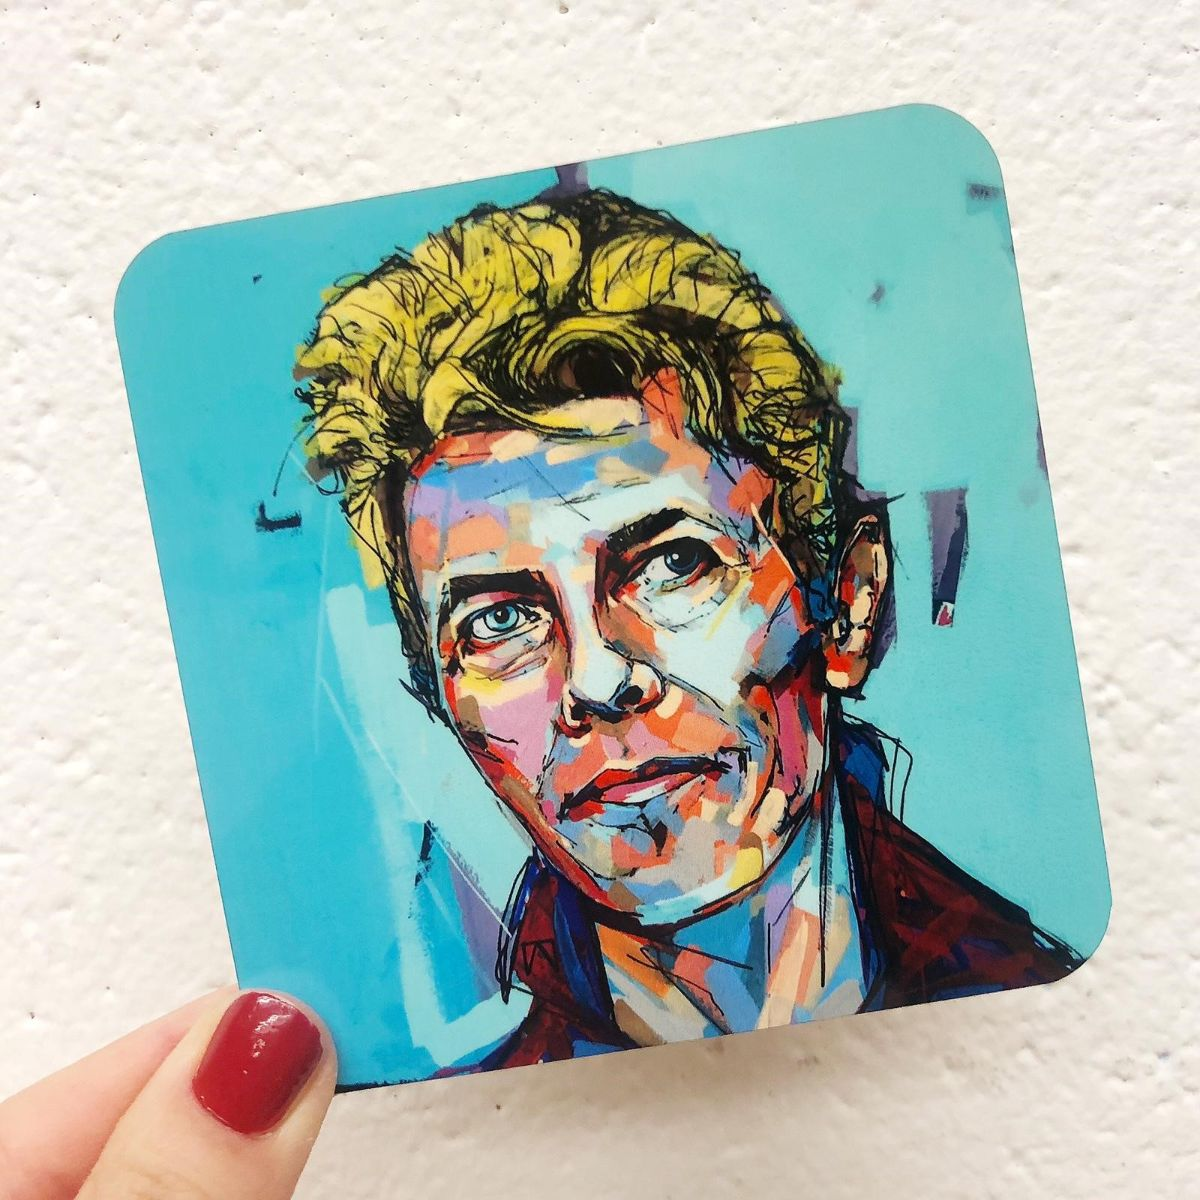 David Bowie artwork - Print photo on coasters in UK